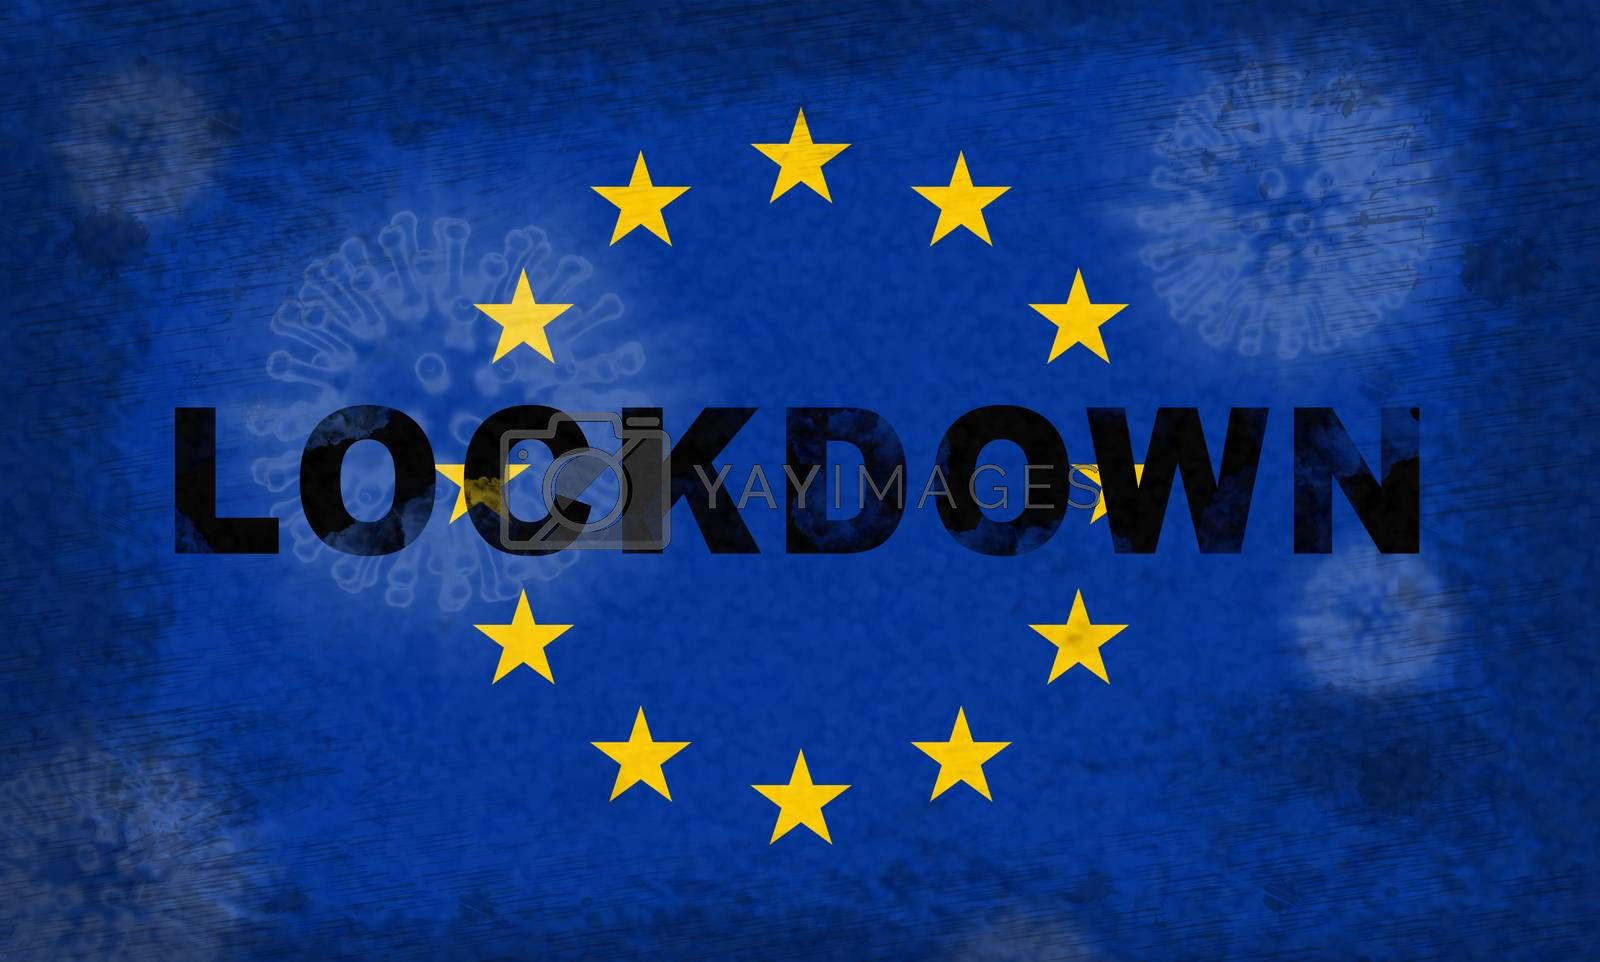 EU lockdown stopping ncov epidemic or outbreak. Covid 19 European Union ban to isolate disease infection - 3d Illustration